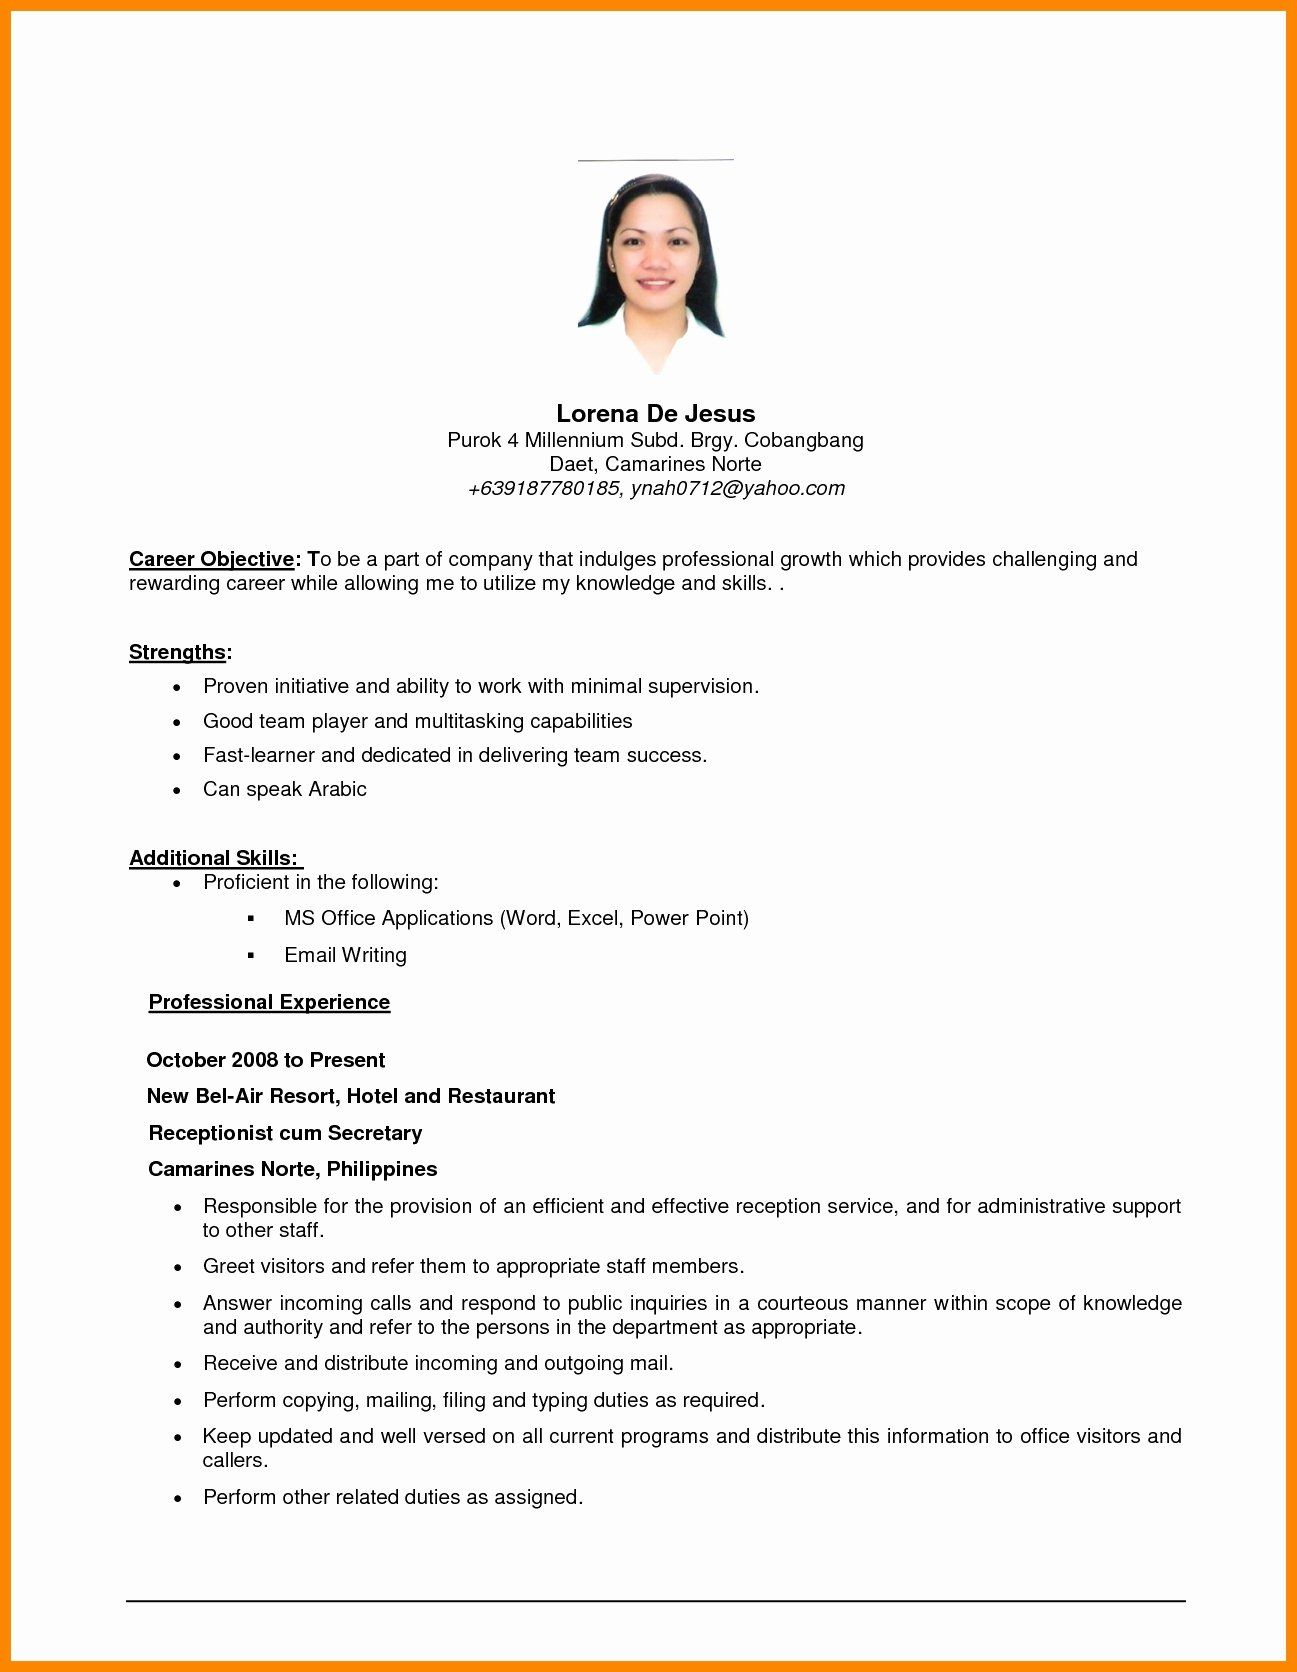 generic objective for resume inspirational general examples career objectives basic good Resume Good Job Objectives For Resume